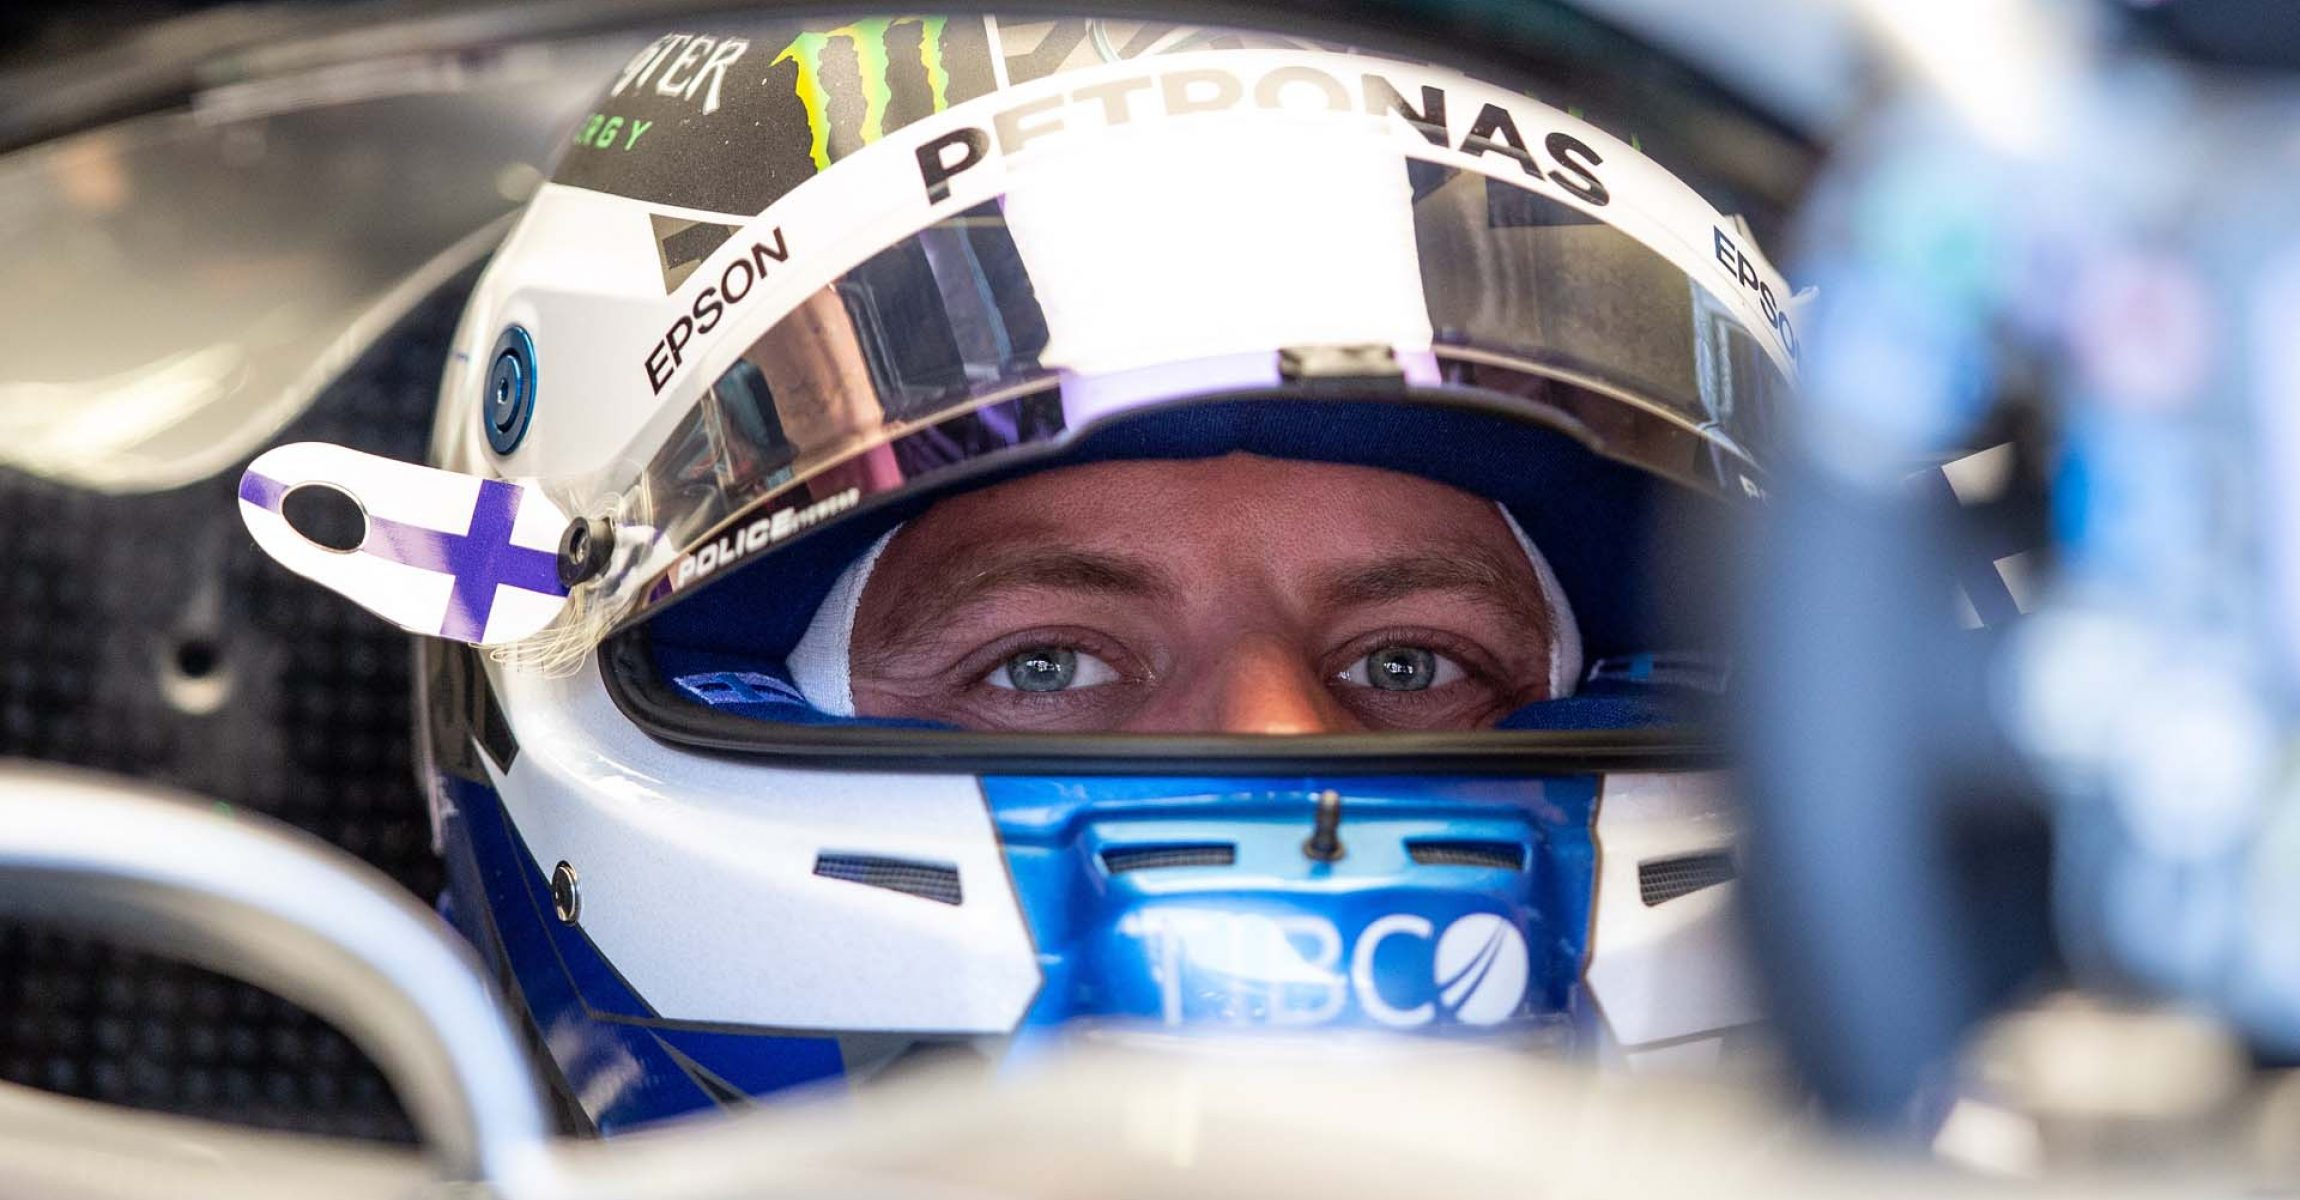 SPIELBERG,AUSTRIA,28.JUN.19 - MOTORSPORTS, FORMULA 1 - Grand Prix of Austria, Red Bull Ring, free practice. Image shows Valtteri Bottas (FIN/ Mercedes). Photo: GEPA pictures/ Harald Steiner - For editorial use only. Image is free of charge.